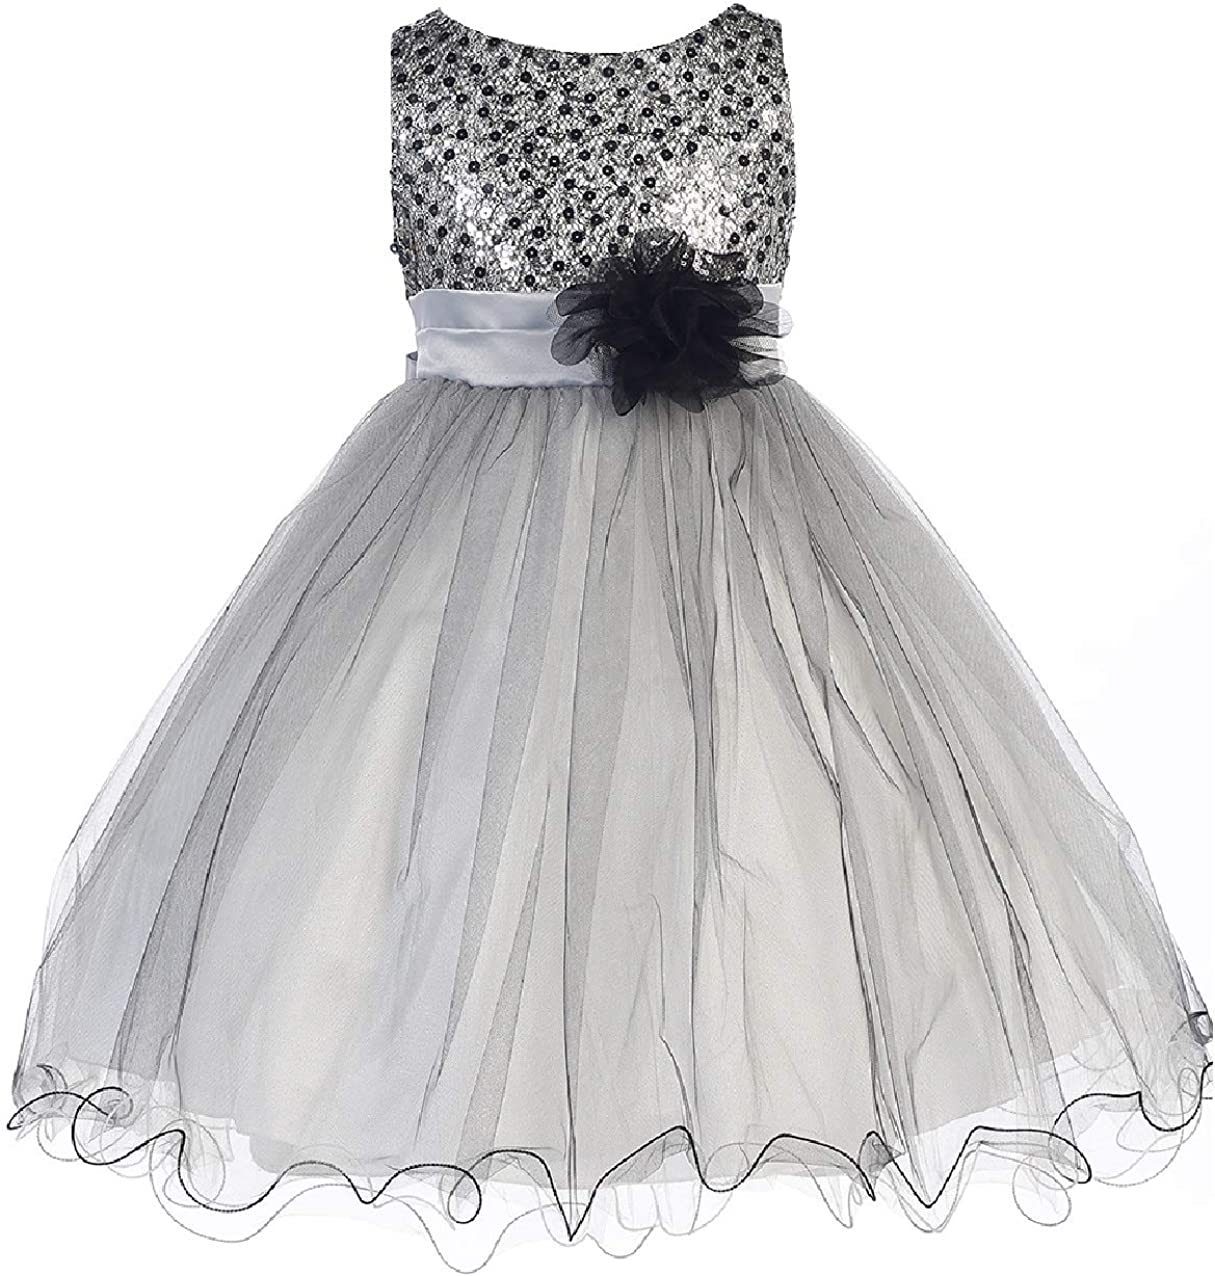 Little Girls Dress Kids Sleeveless Party Tulle Sequin Max Ranking TOP1 63% OFF Fl Holiday